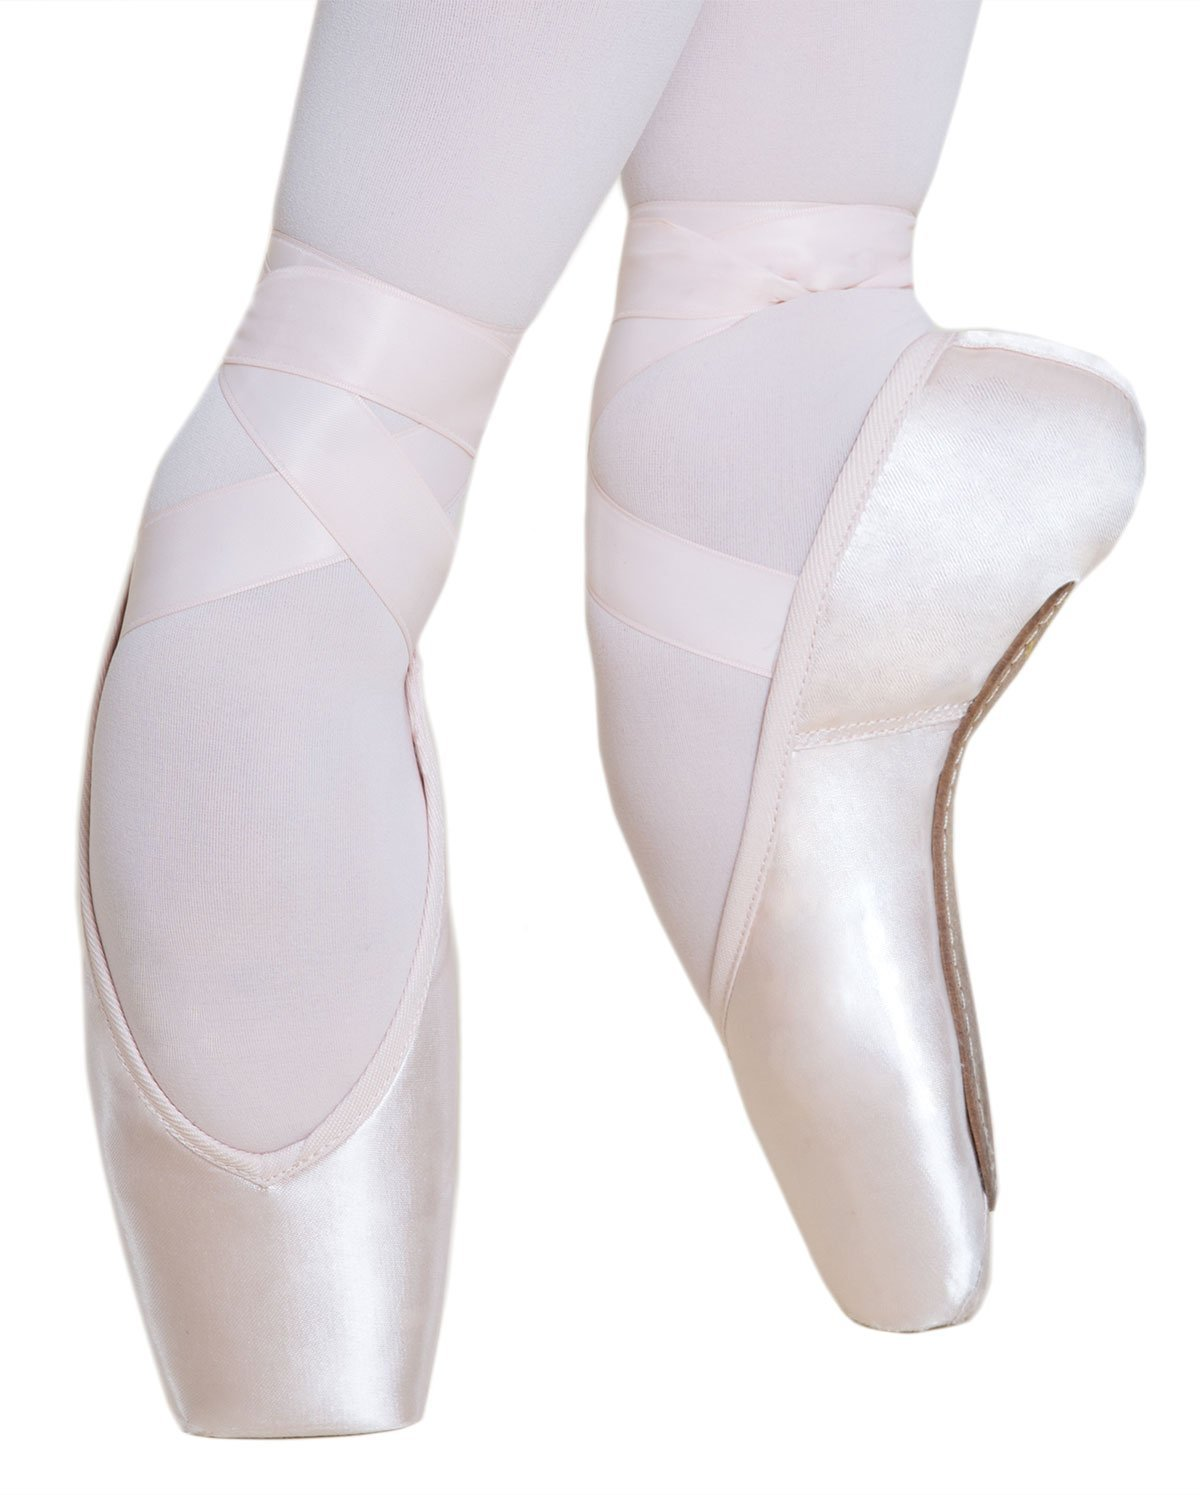 How To Find Your Pointe Shoe Size